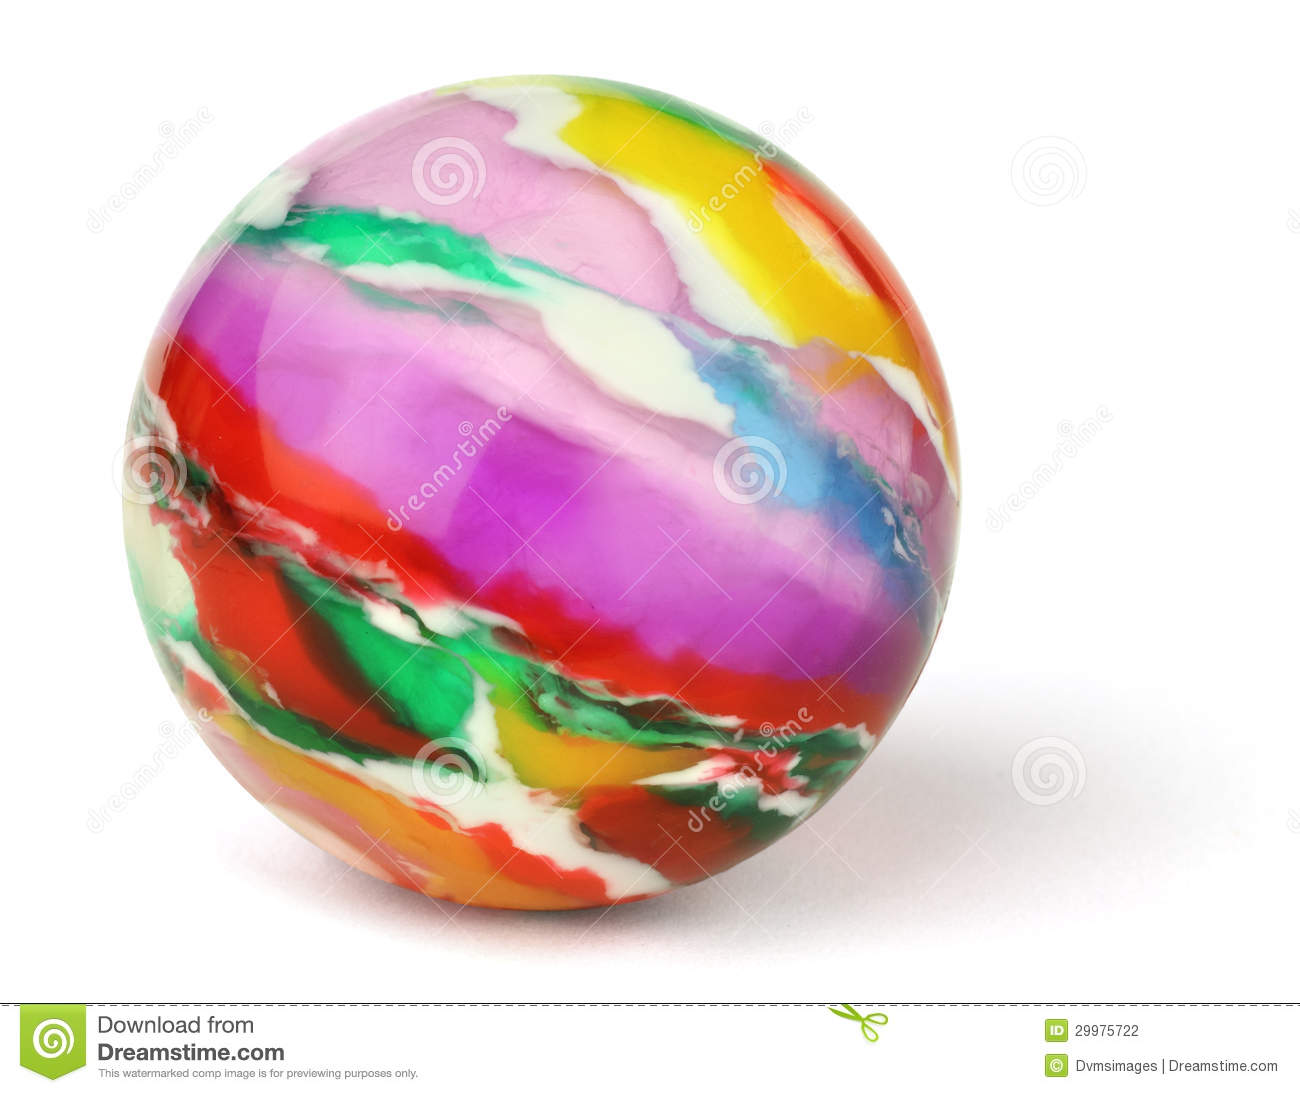 Toy Rubber Balls : Toy ball stock photography image